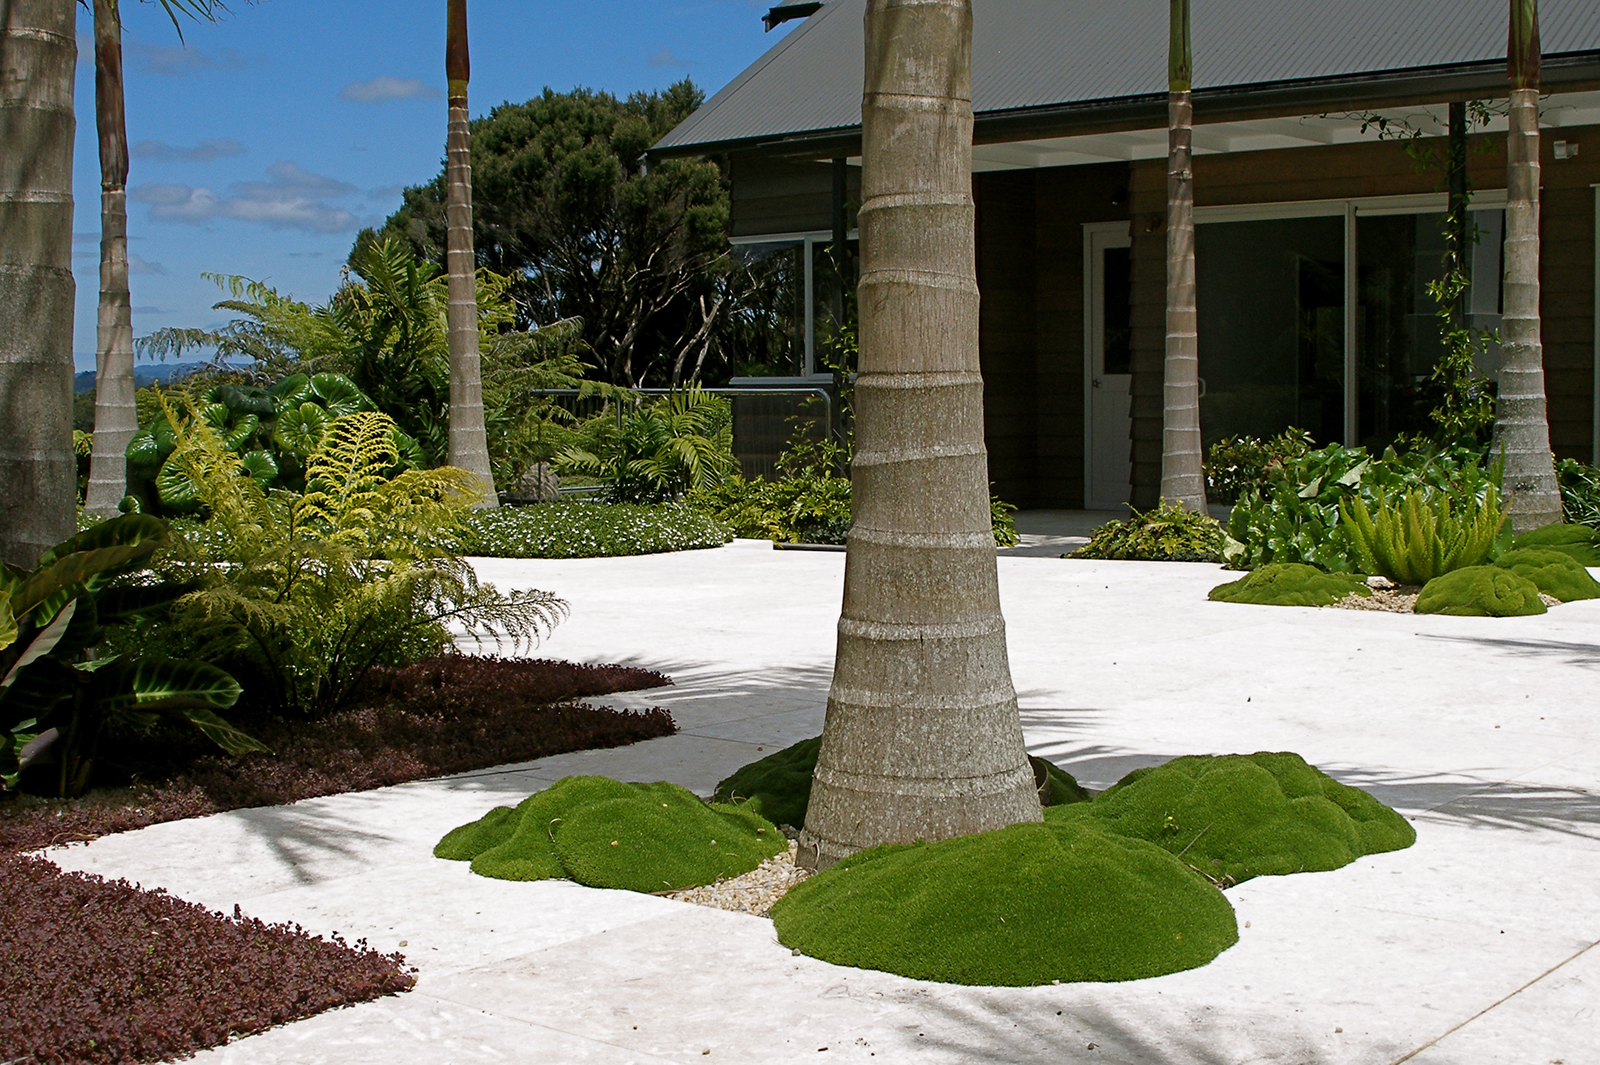 Courtyard landscaping by Hawthorn Landscape Architects